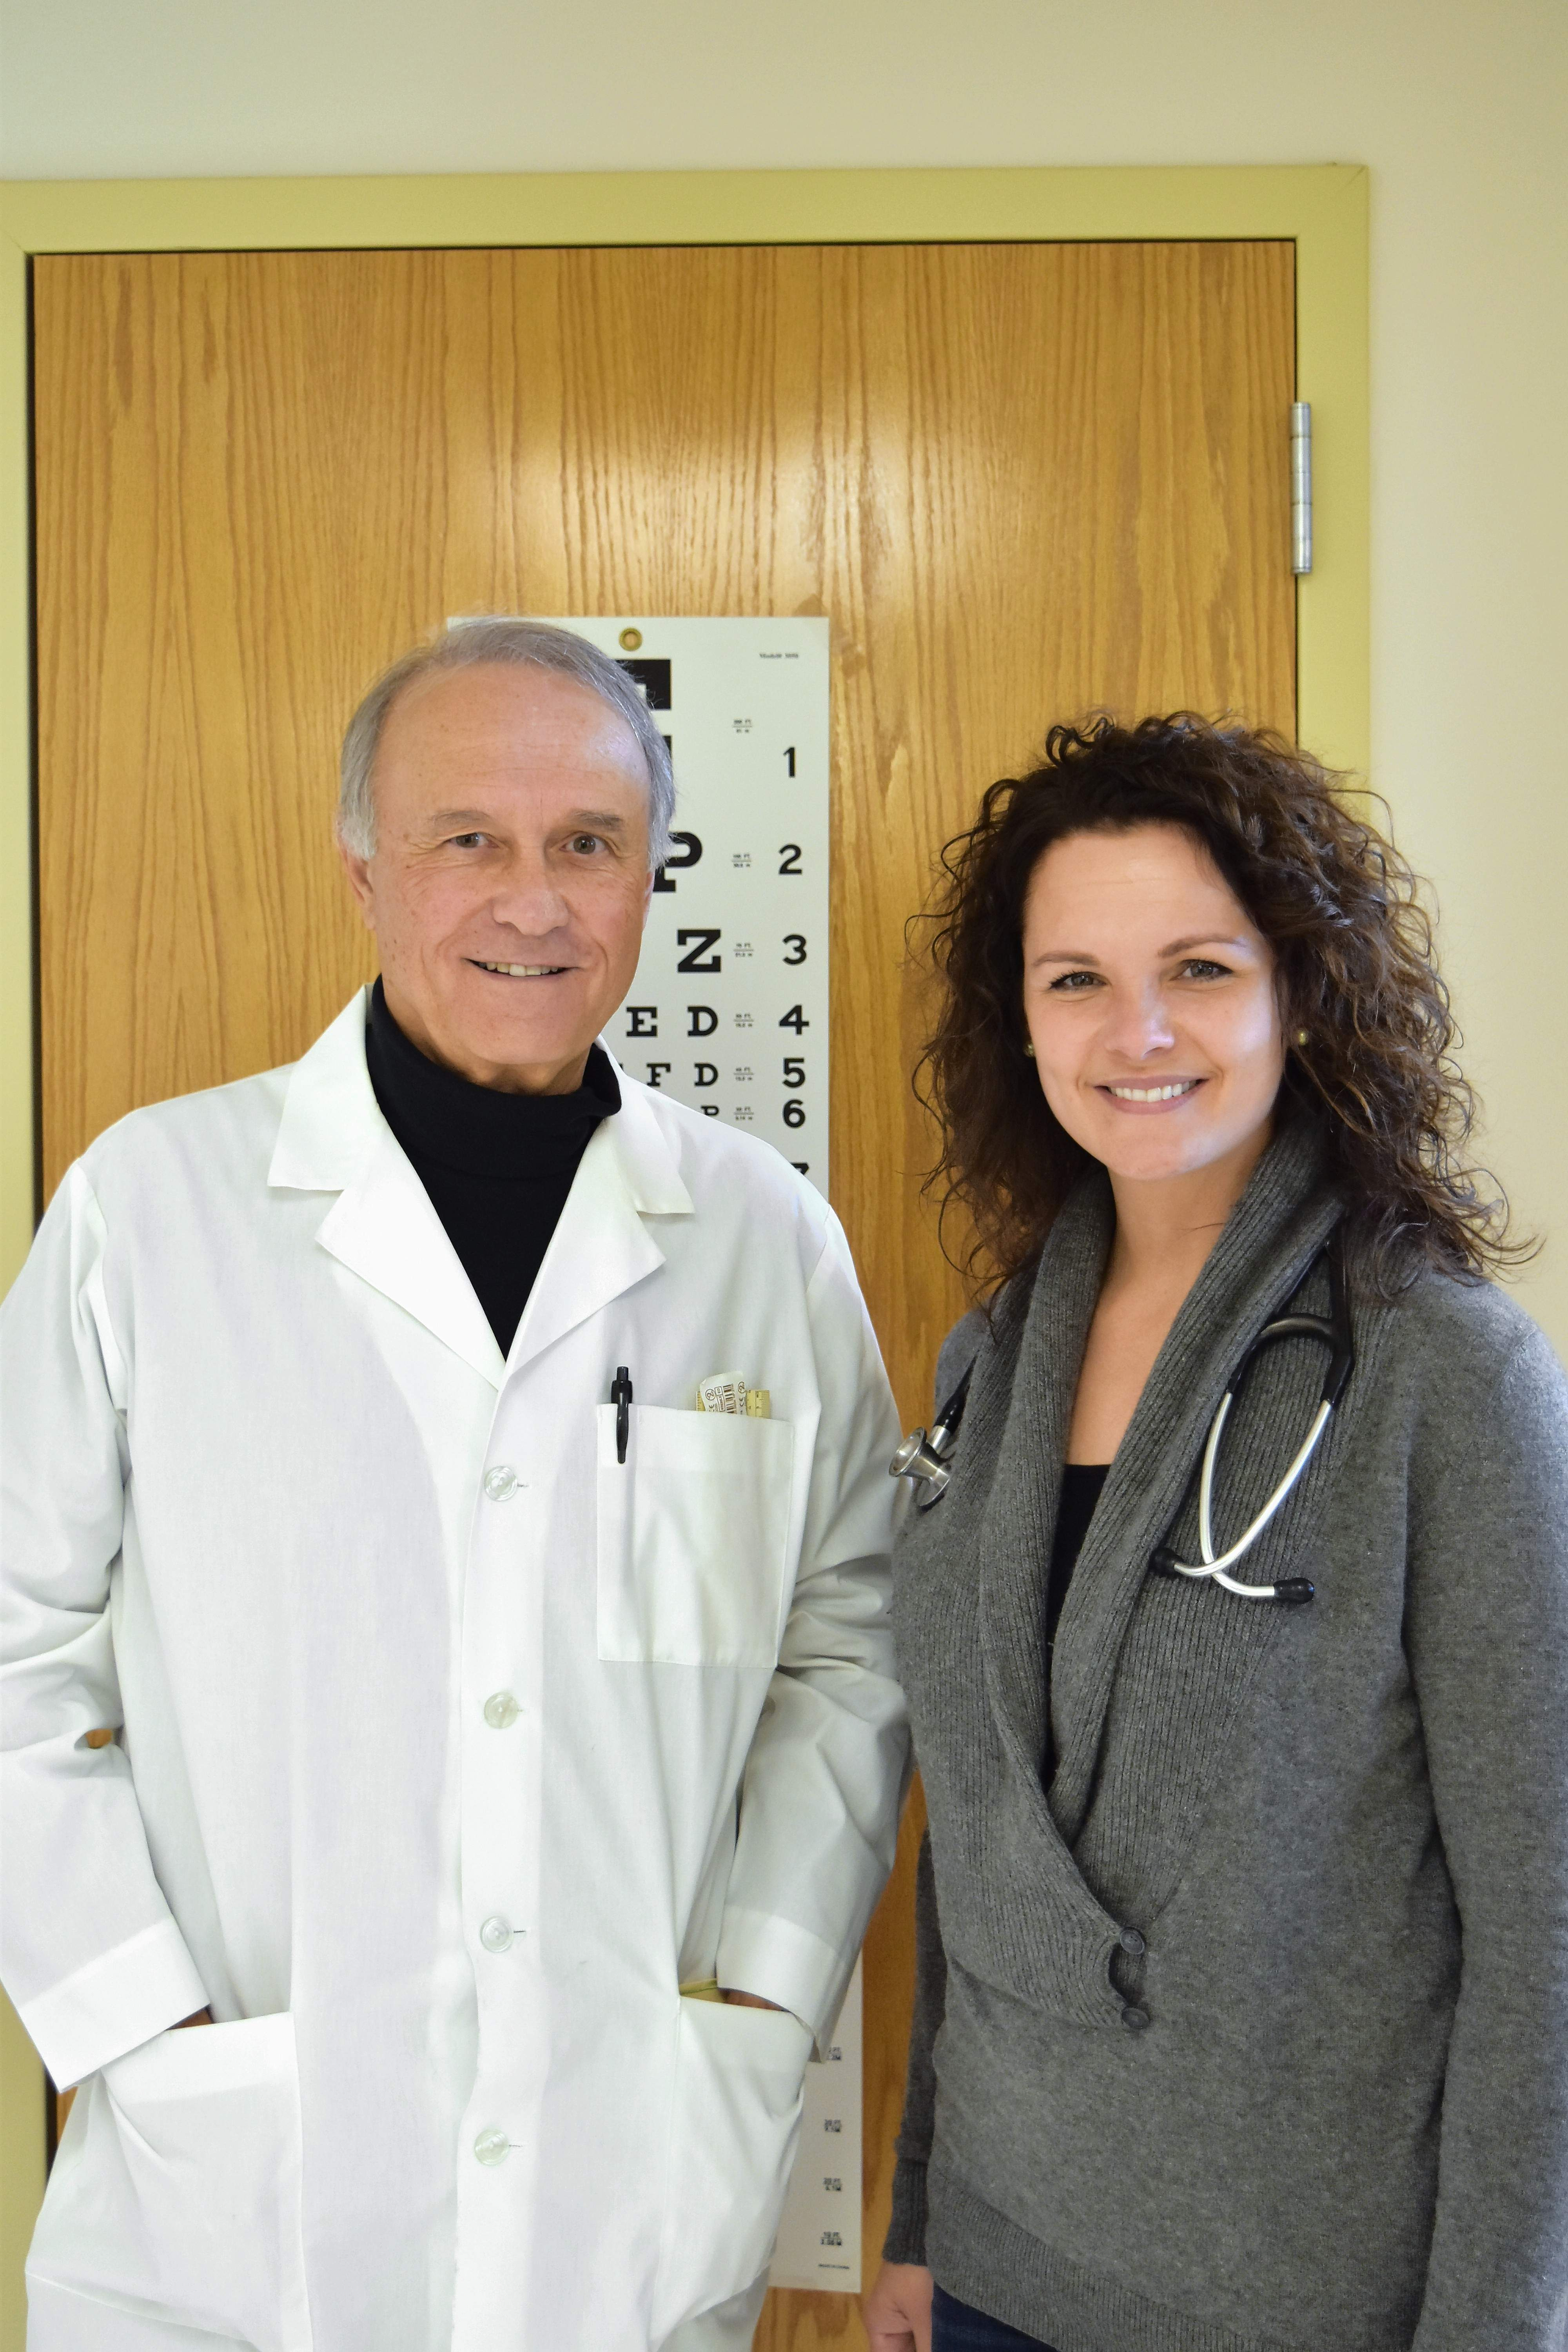 Dr. Tom Martin and Natalie Phelps Finnie provide medical care for patients at Egyptian Health Department's Gallatin County Wellness Center.